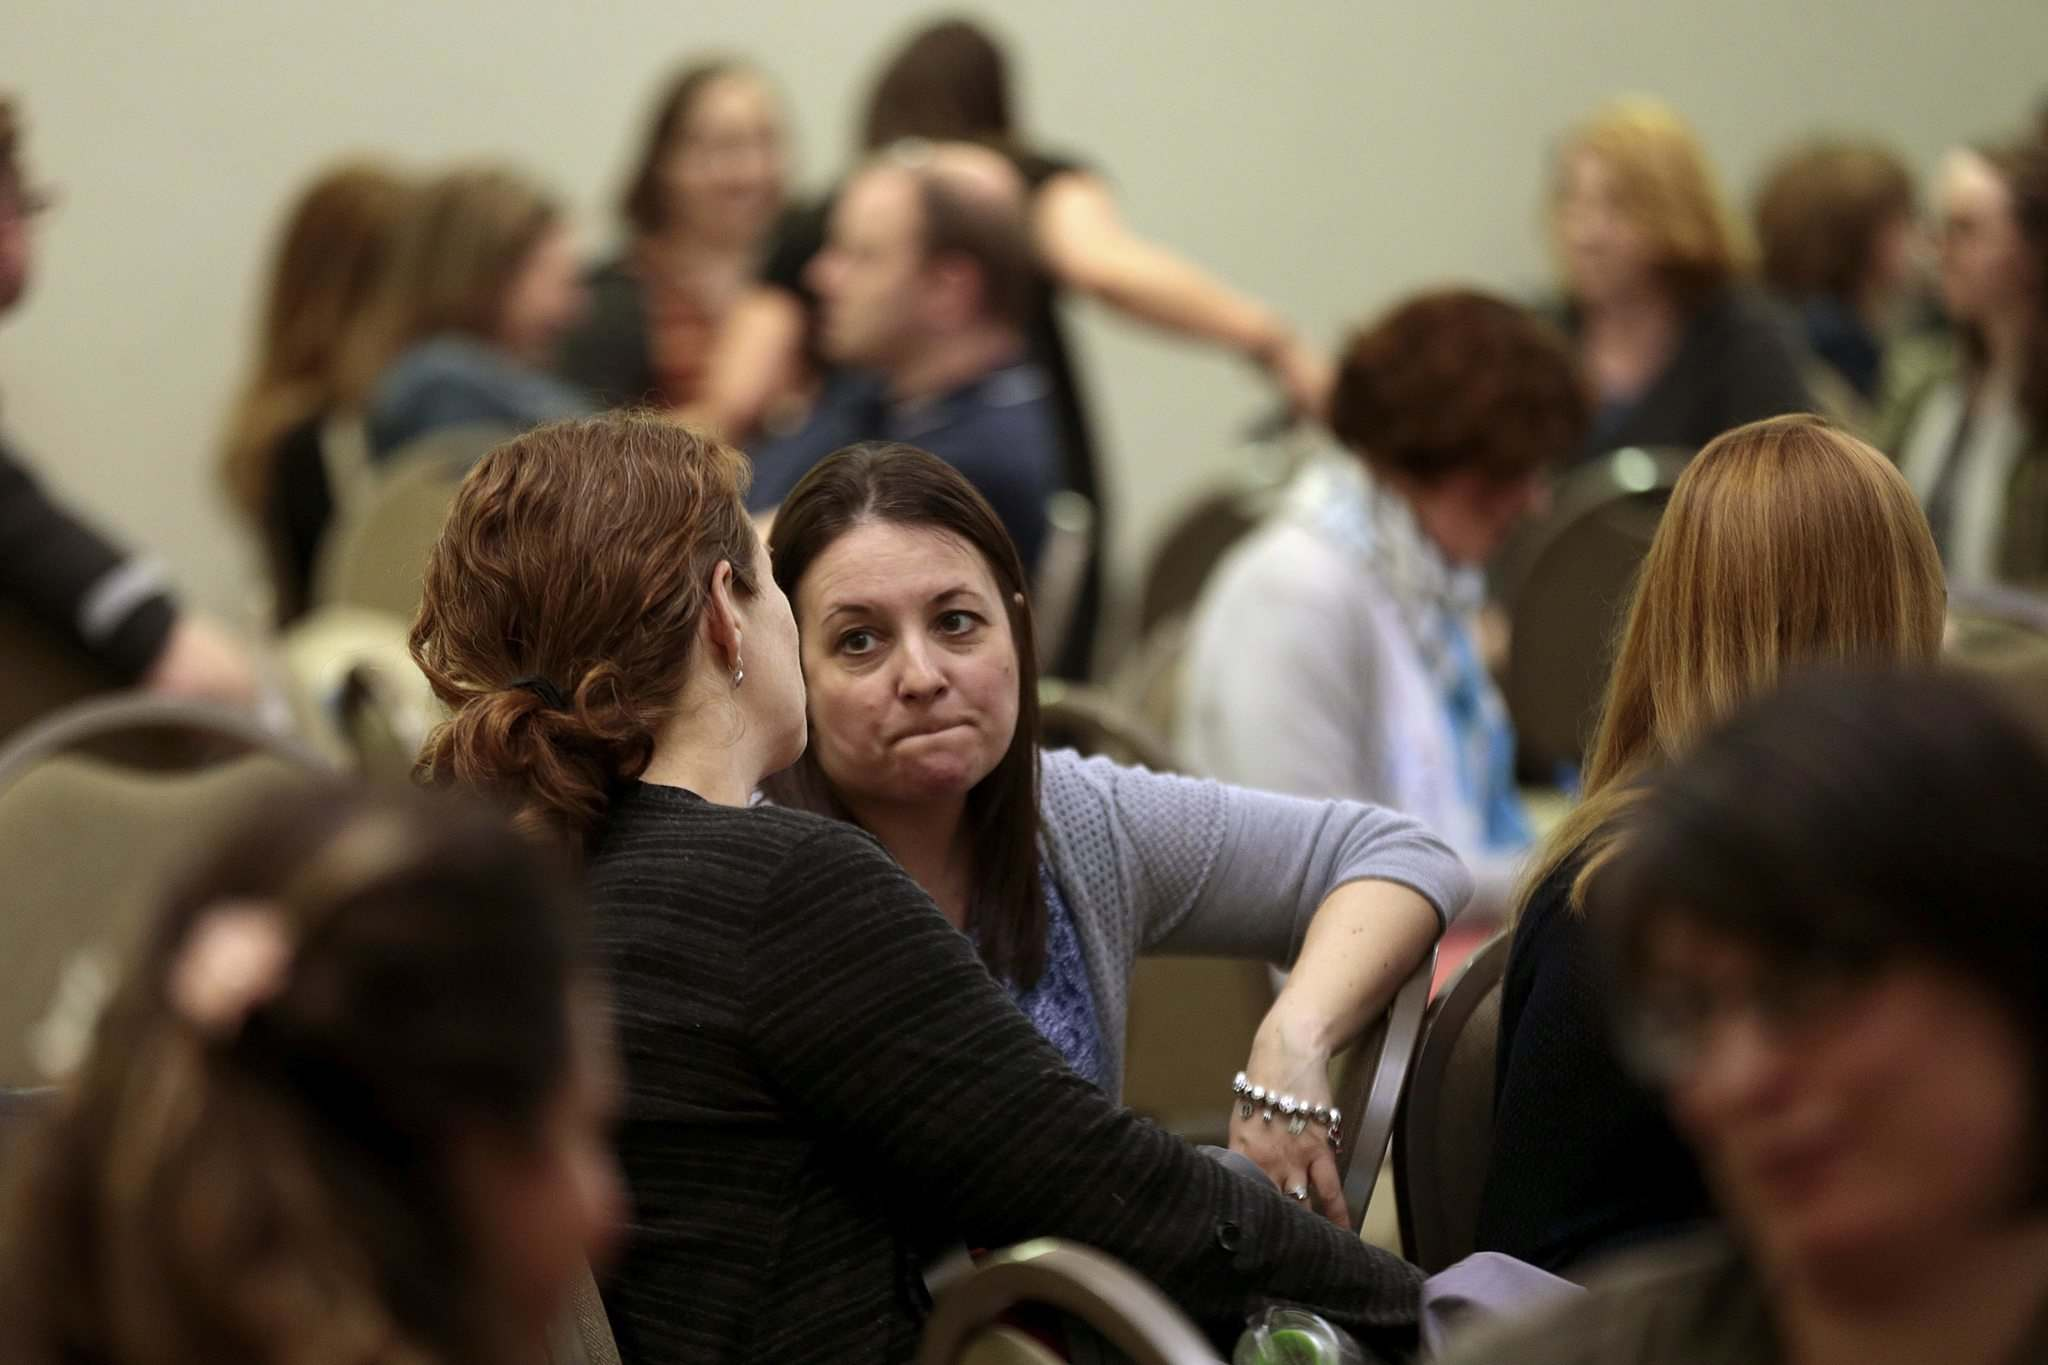 PHIL HOSSACK / WINNIPEG FREE PRESS</p><p>Members of the public attend a meeting about the K-12 education review Wednesday.</p>